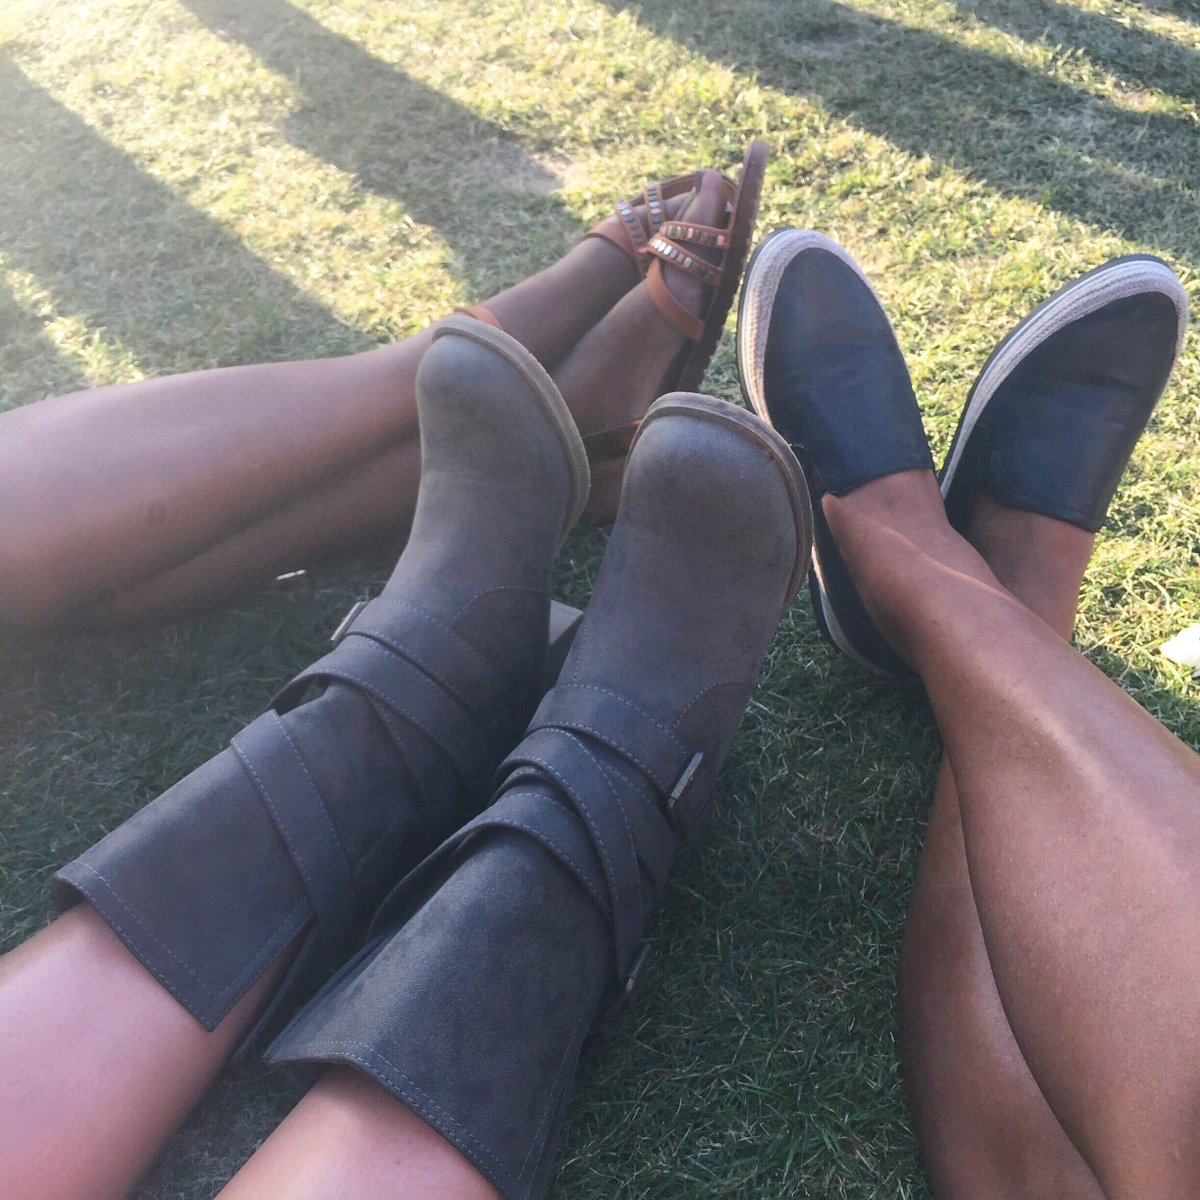 We're not over Weekend 1. Follow us and RT this to enter for your chance to win the CHECK IT OUT boot! http://t.co/zp1uanU2D0